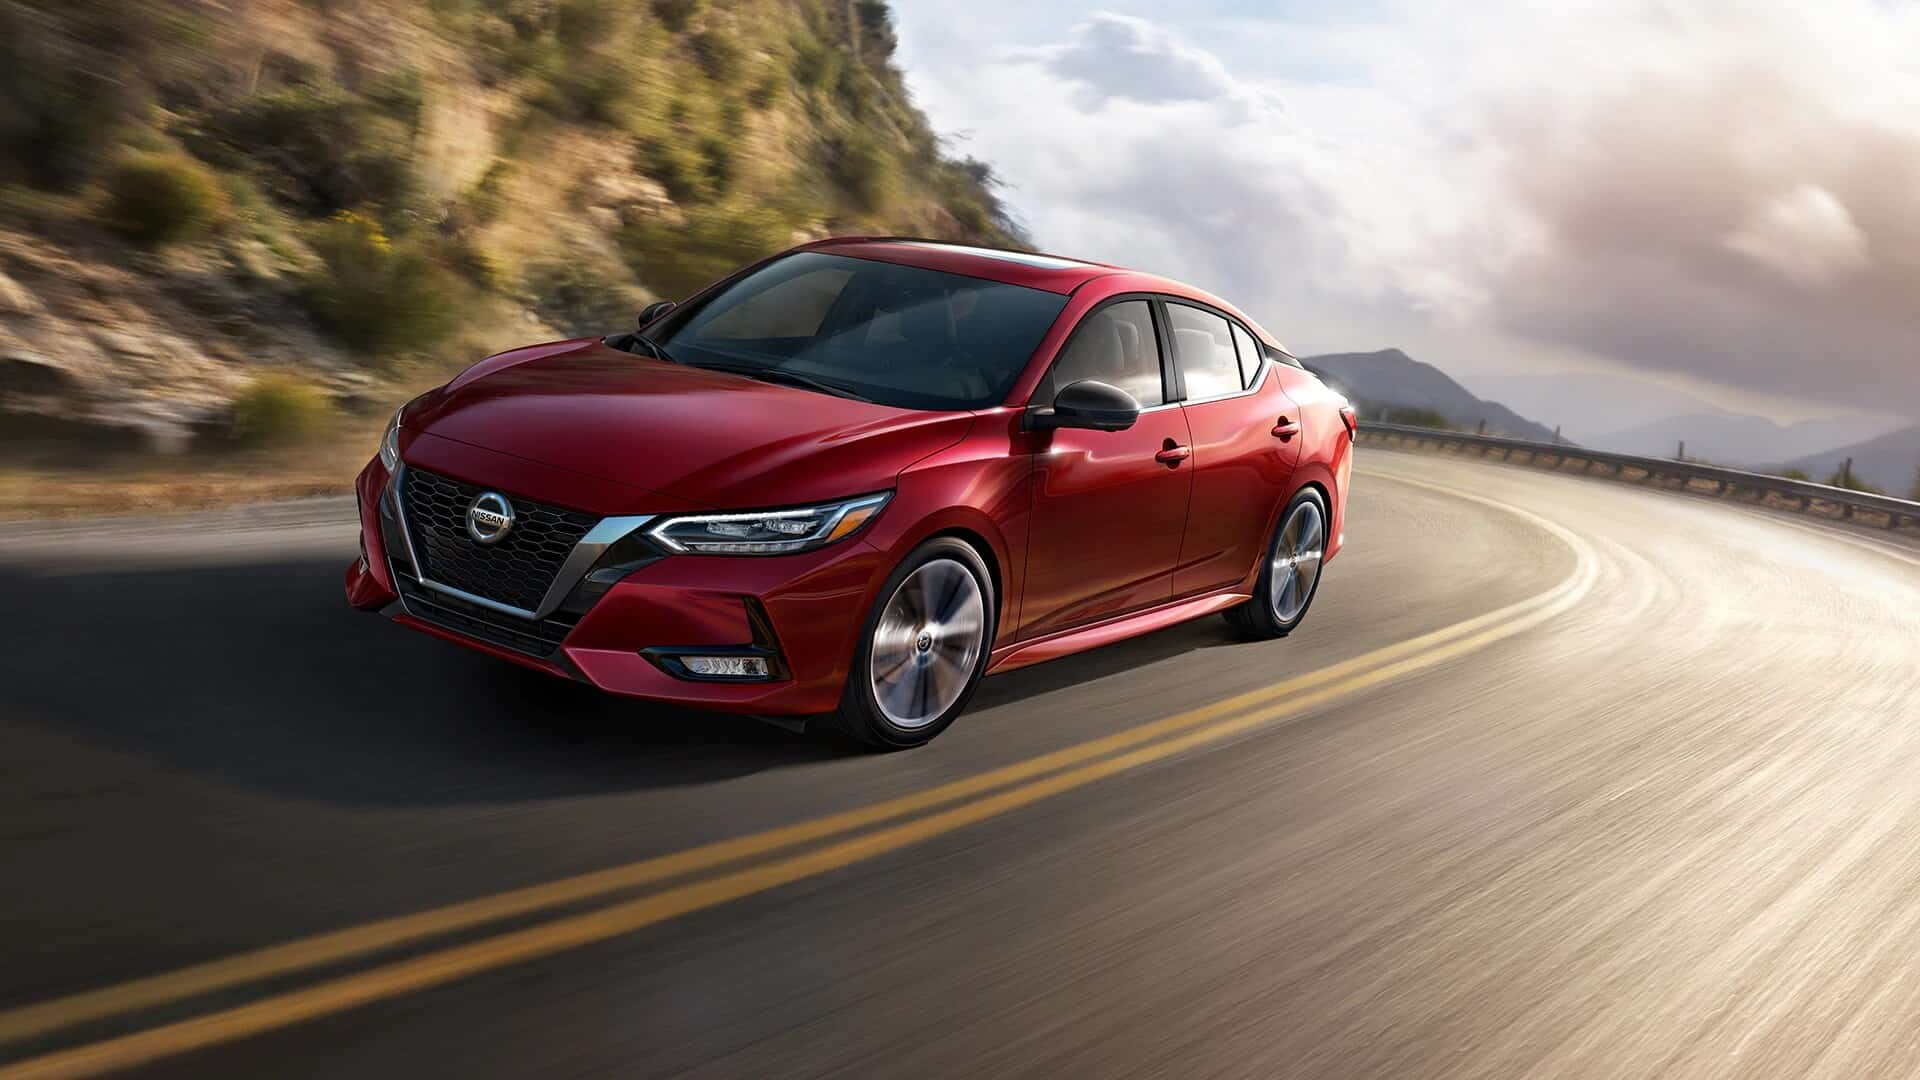 Get to Know the 2020 Nissan Sentra Near Irvine CA